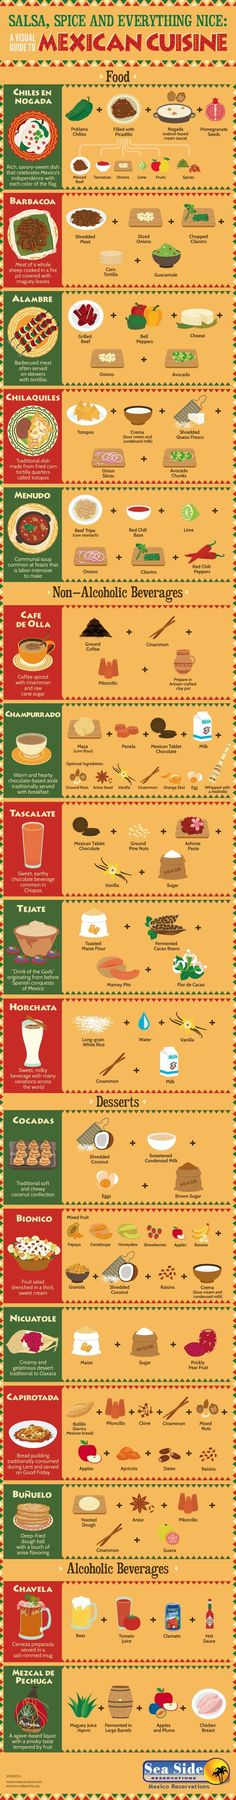 17 Special Mexican Recipes In One Infographic #mexicanfoodrecipes